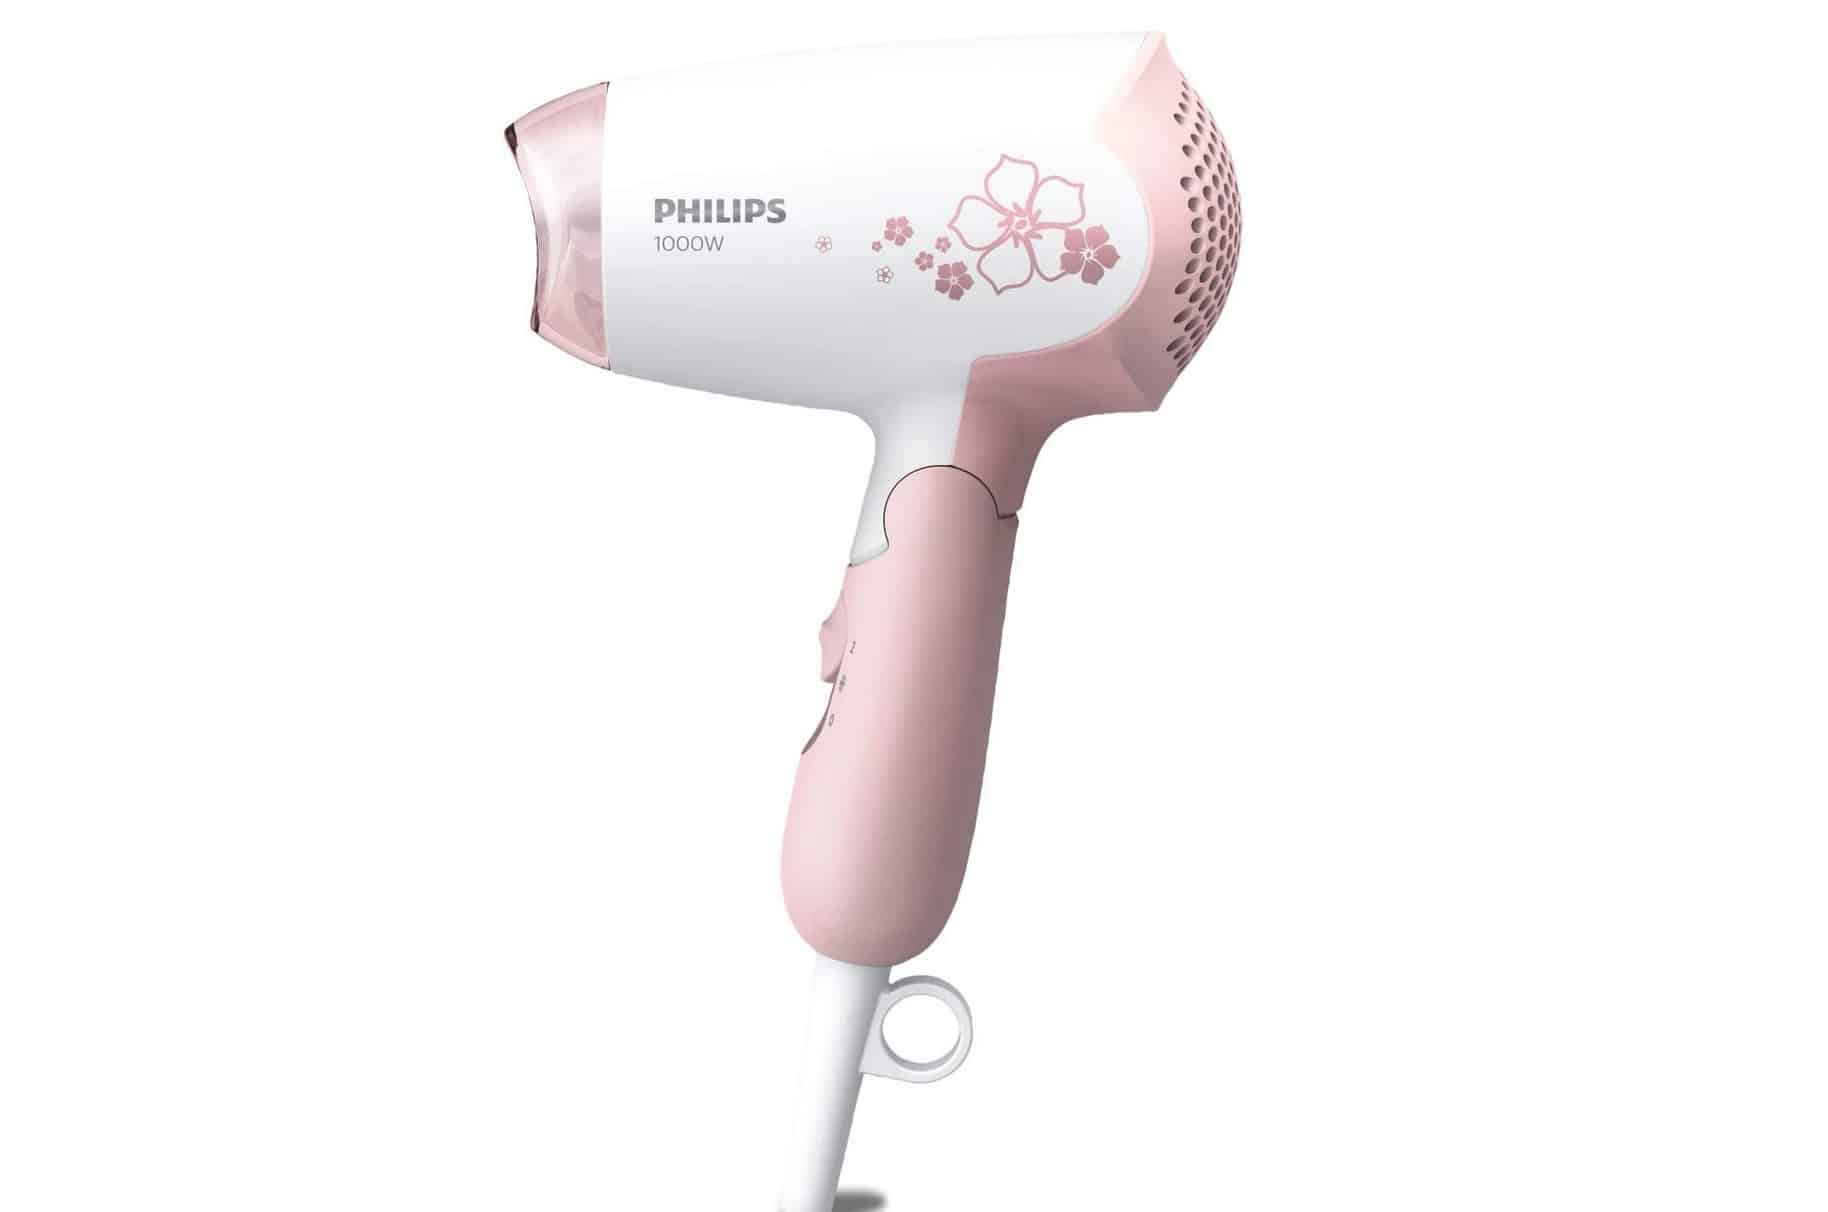 Philips-Hair-Dryer-Compact-1400W